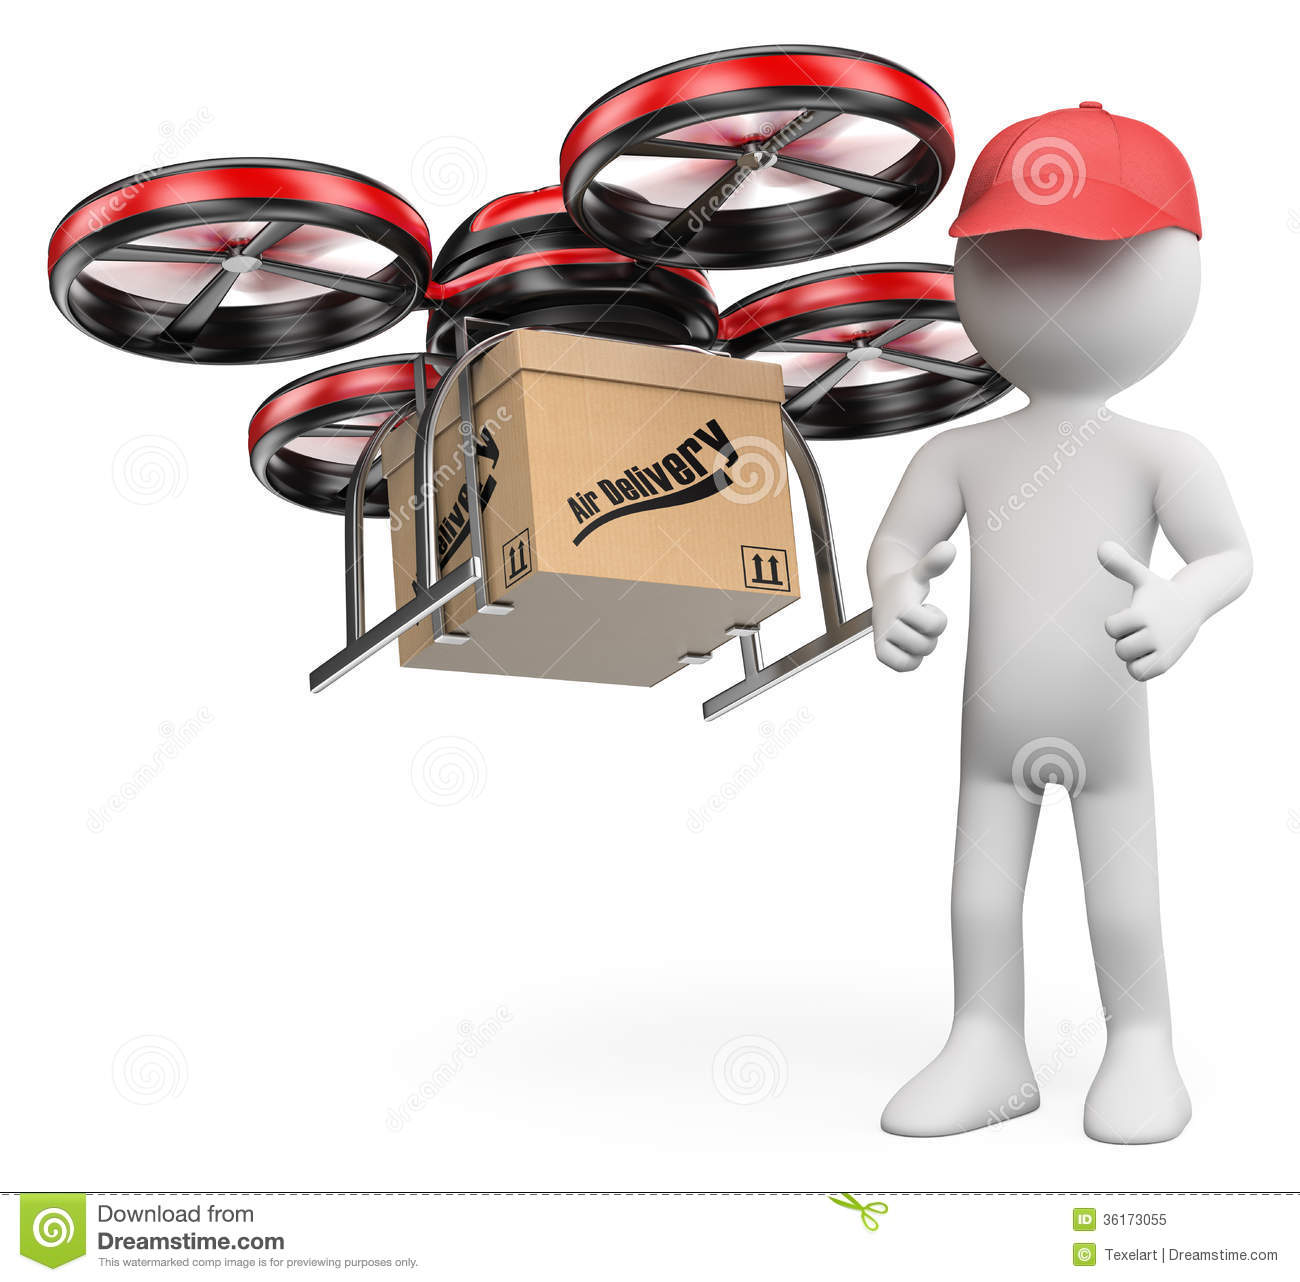 remote control for helicopter with Royalty Free Stock Photo D White People Drone Delivering Package Air Parcel Delivery Service Background Image36173055 on Vector Remote Control Rc Transmitter 11434640 besides Beginner Rc Airplane besides Stock Illustration Vector Monochrome Picture Drone Top View Illustration Labels Badges Logos Design Isolate White Background Image75665756 further Pht besides Product.